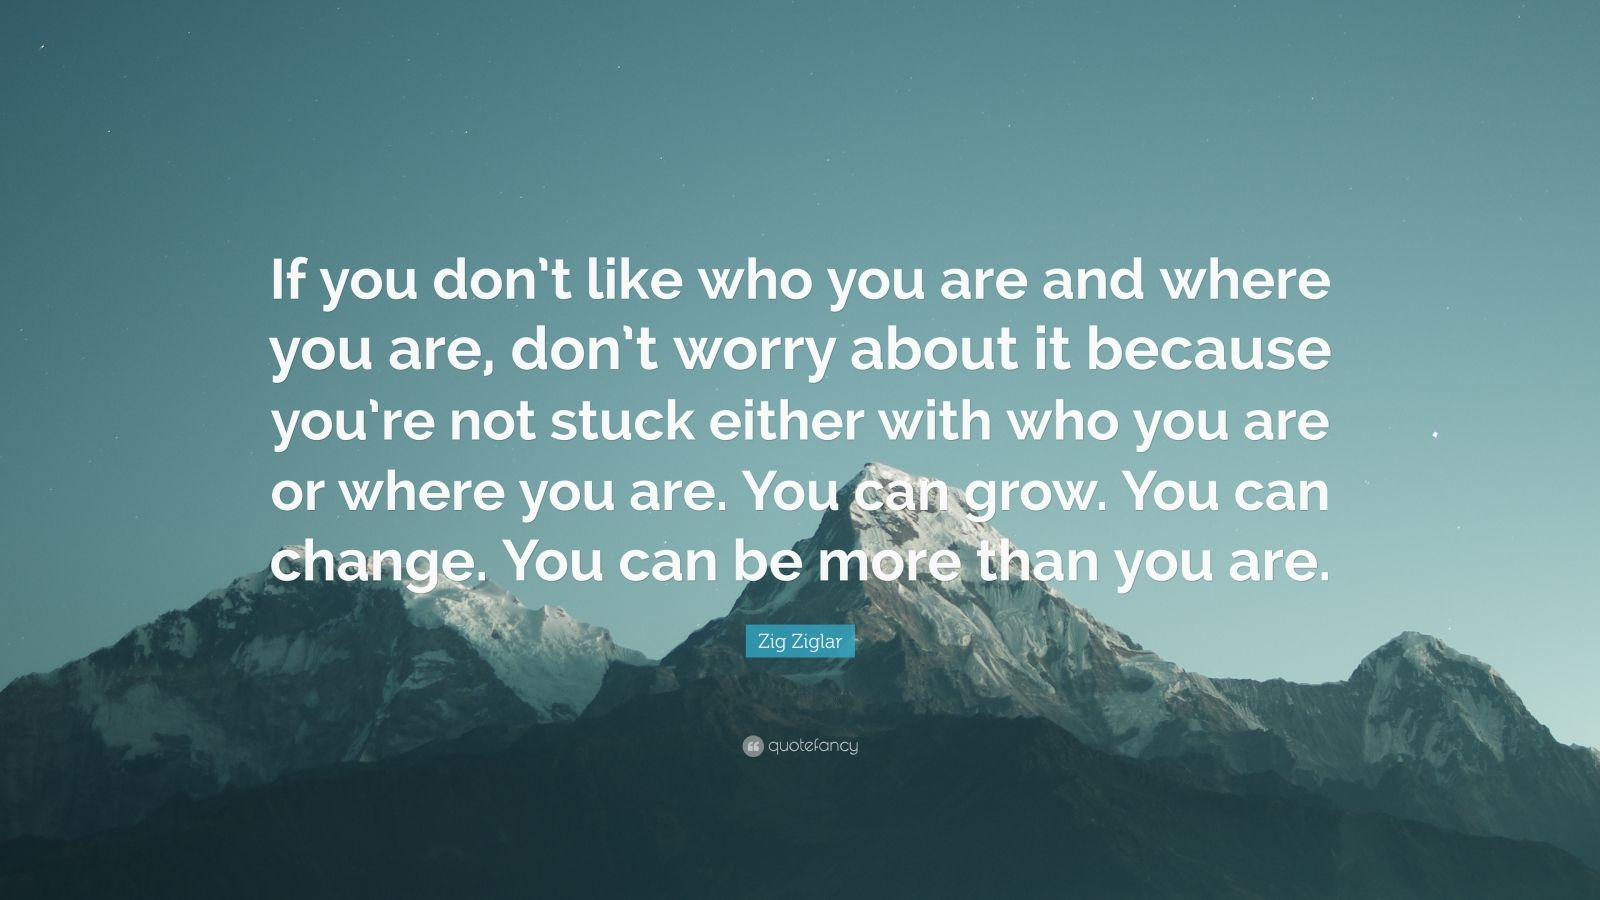 "Zig Ziglar Quote: ""If you don't like who you are and where you are, don't worry about it because you're not stuck either with who you are or where you are. You can grow. You can change. You can be more than you are."""